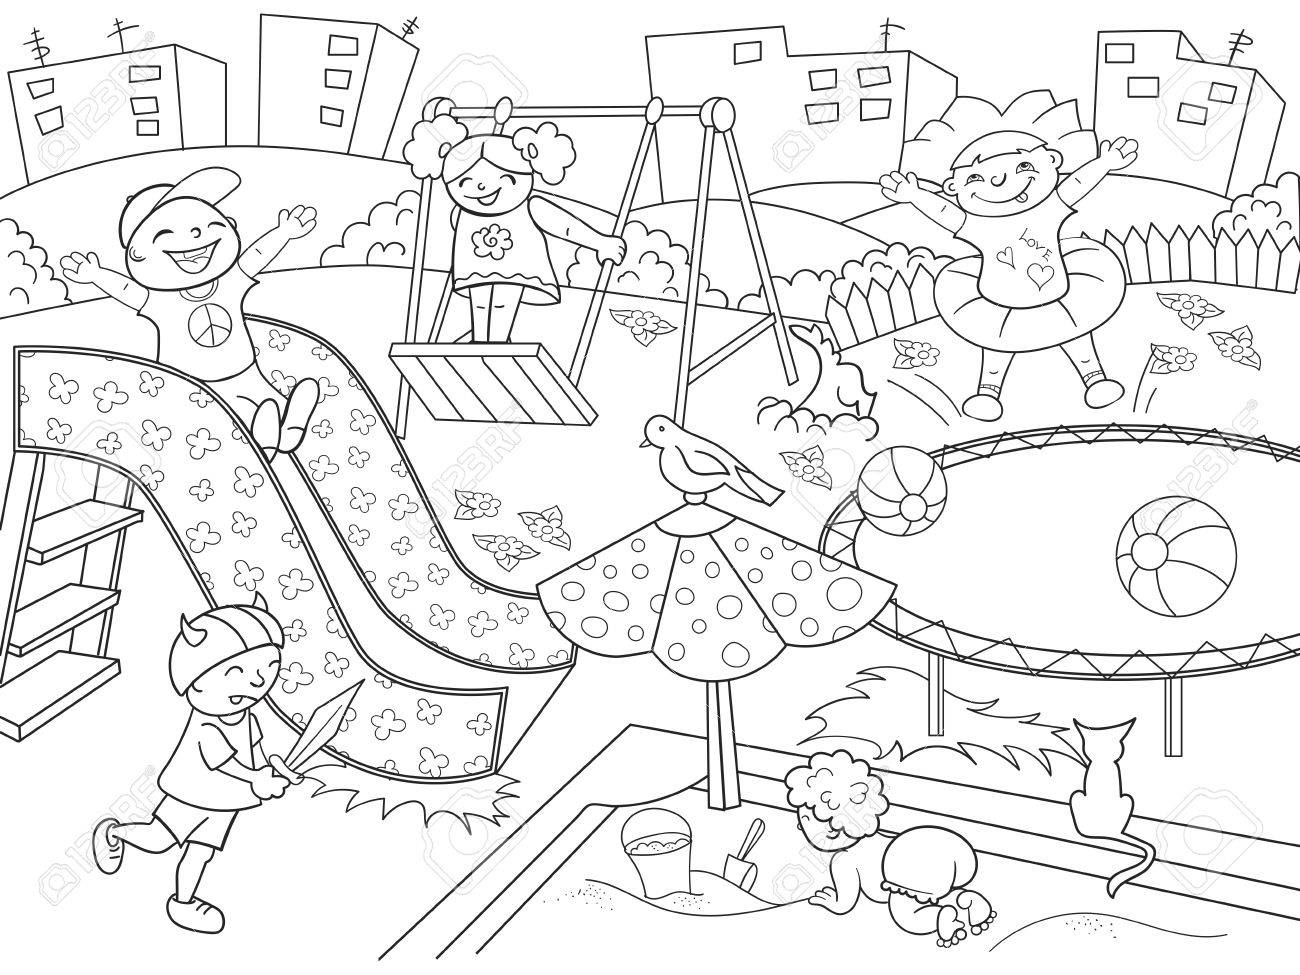 childrens playground coloring. vector illustration of black and